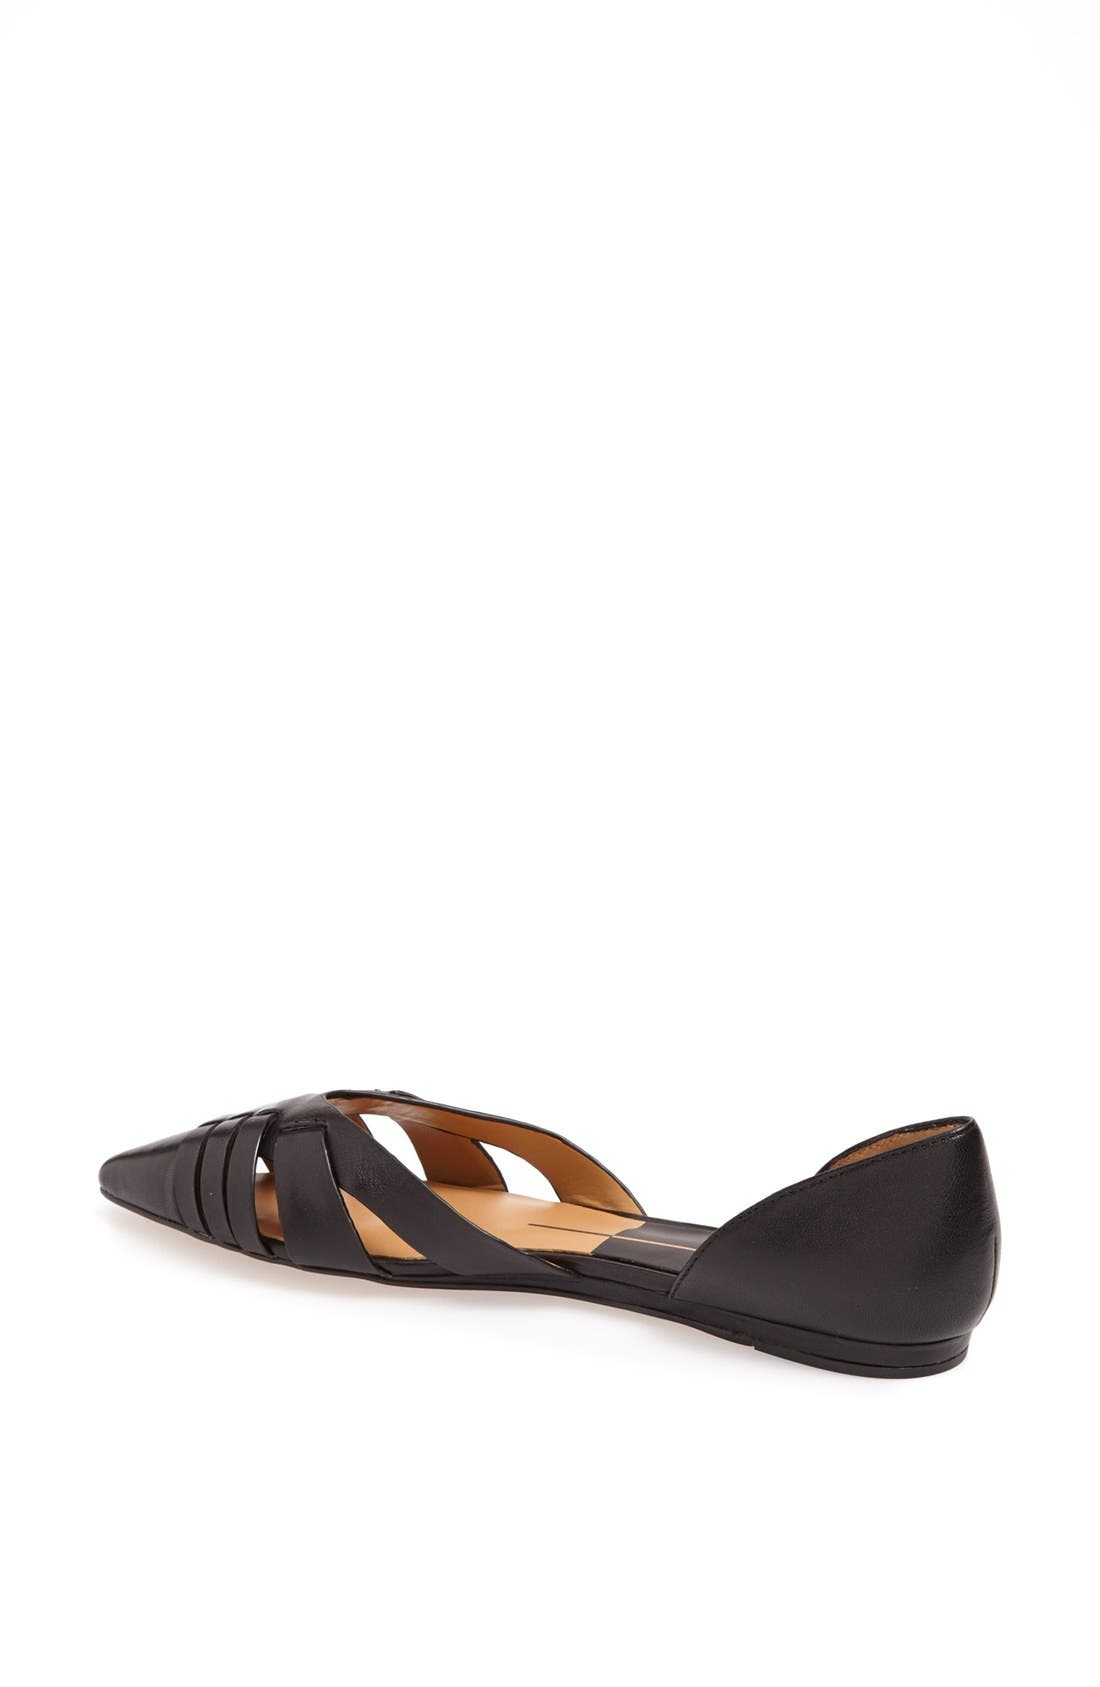 Alternate Image 2  - Dolce Vita 'Alpha' Leather Flat Sandal